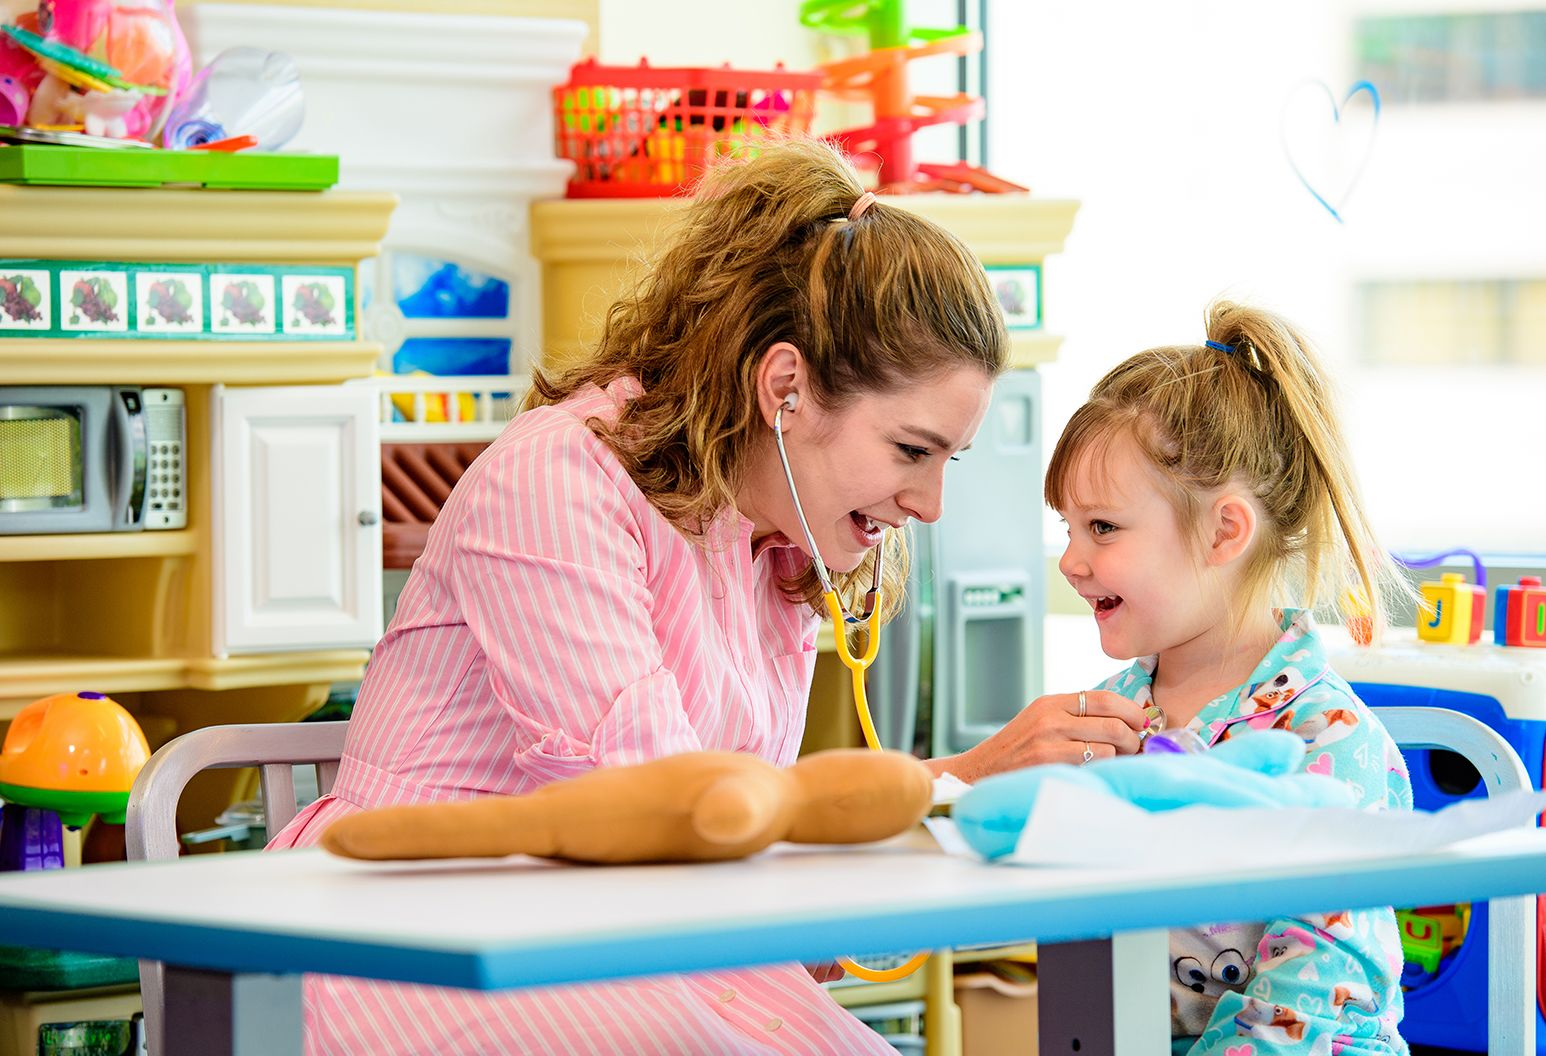 A female child life worker in a pink and white striped shirt and a five-year-old female pediatric patient in blue patterned pajamas sit at a table in a colorful playroom at Cohen Children's Medical Center. They are both smiling as the woman listens to the girl's heartbeat with a yellow stethoscope. There is a medical doll on the table and toys in the background.